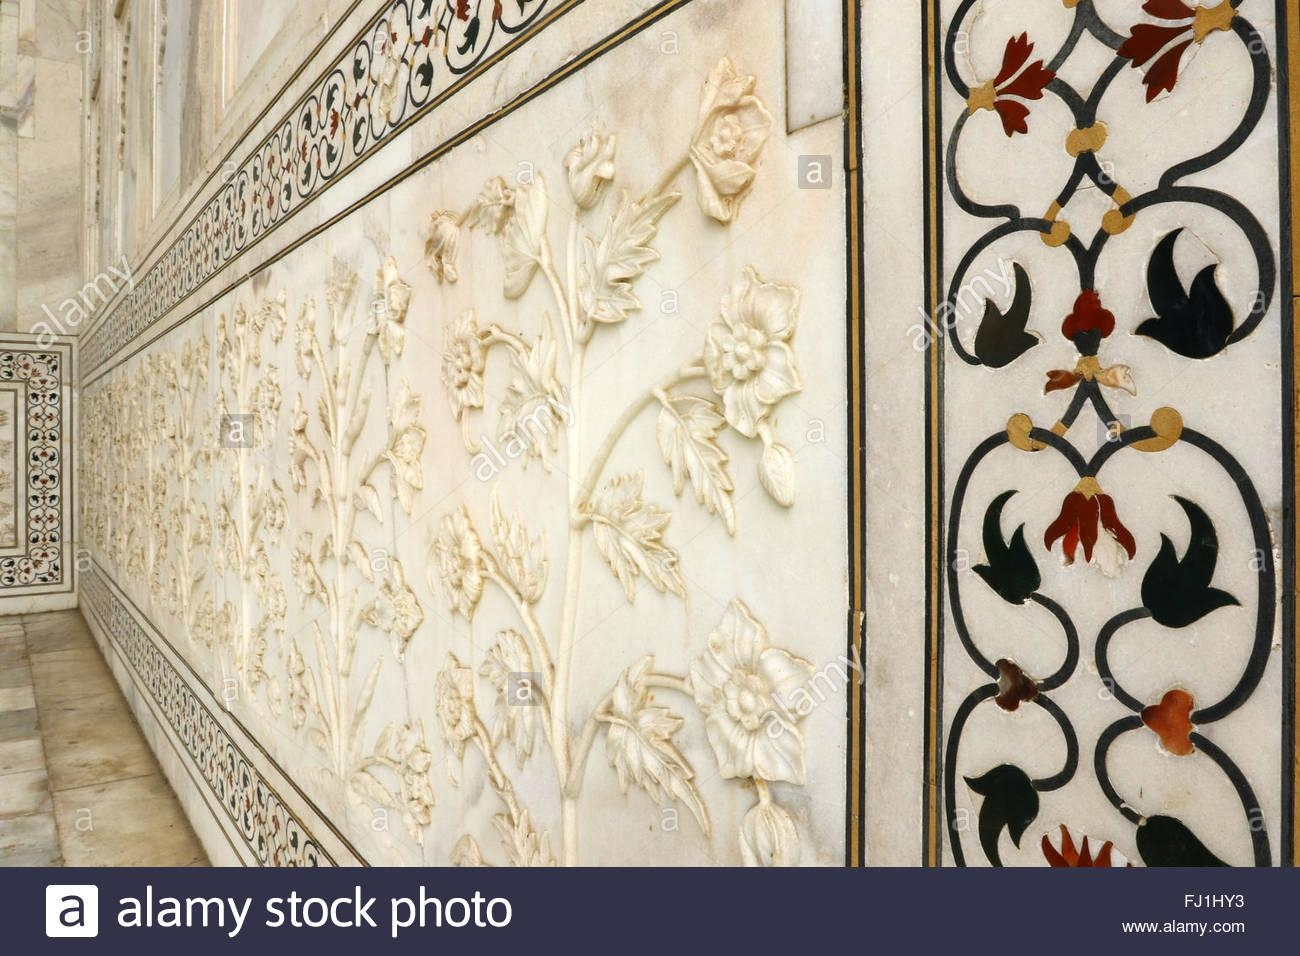 Taj Mahal Marble Art Flowers Stock Photos & Taj Mahal Marble Art Inside Taj Mahal Wall Art (View 11 of 20)